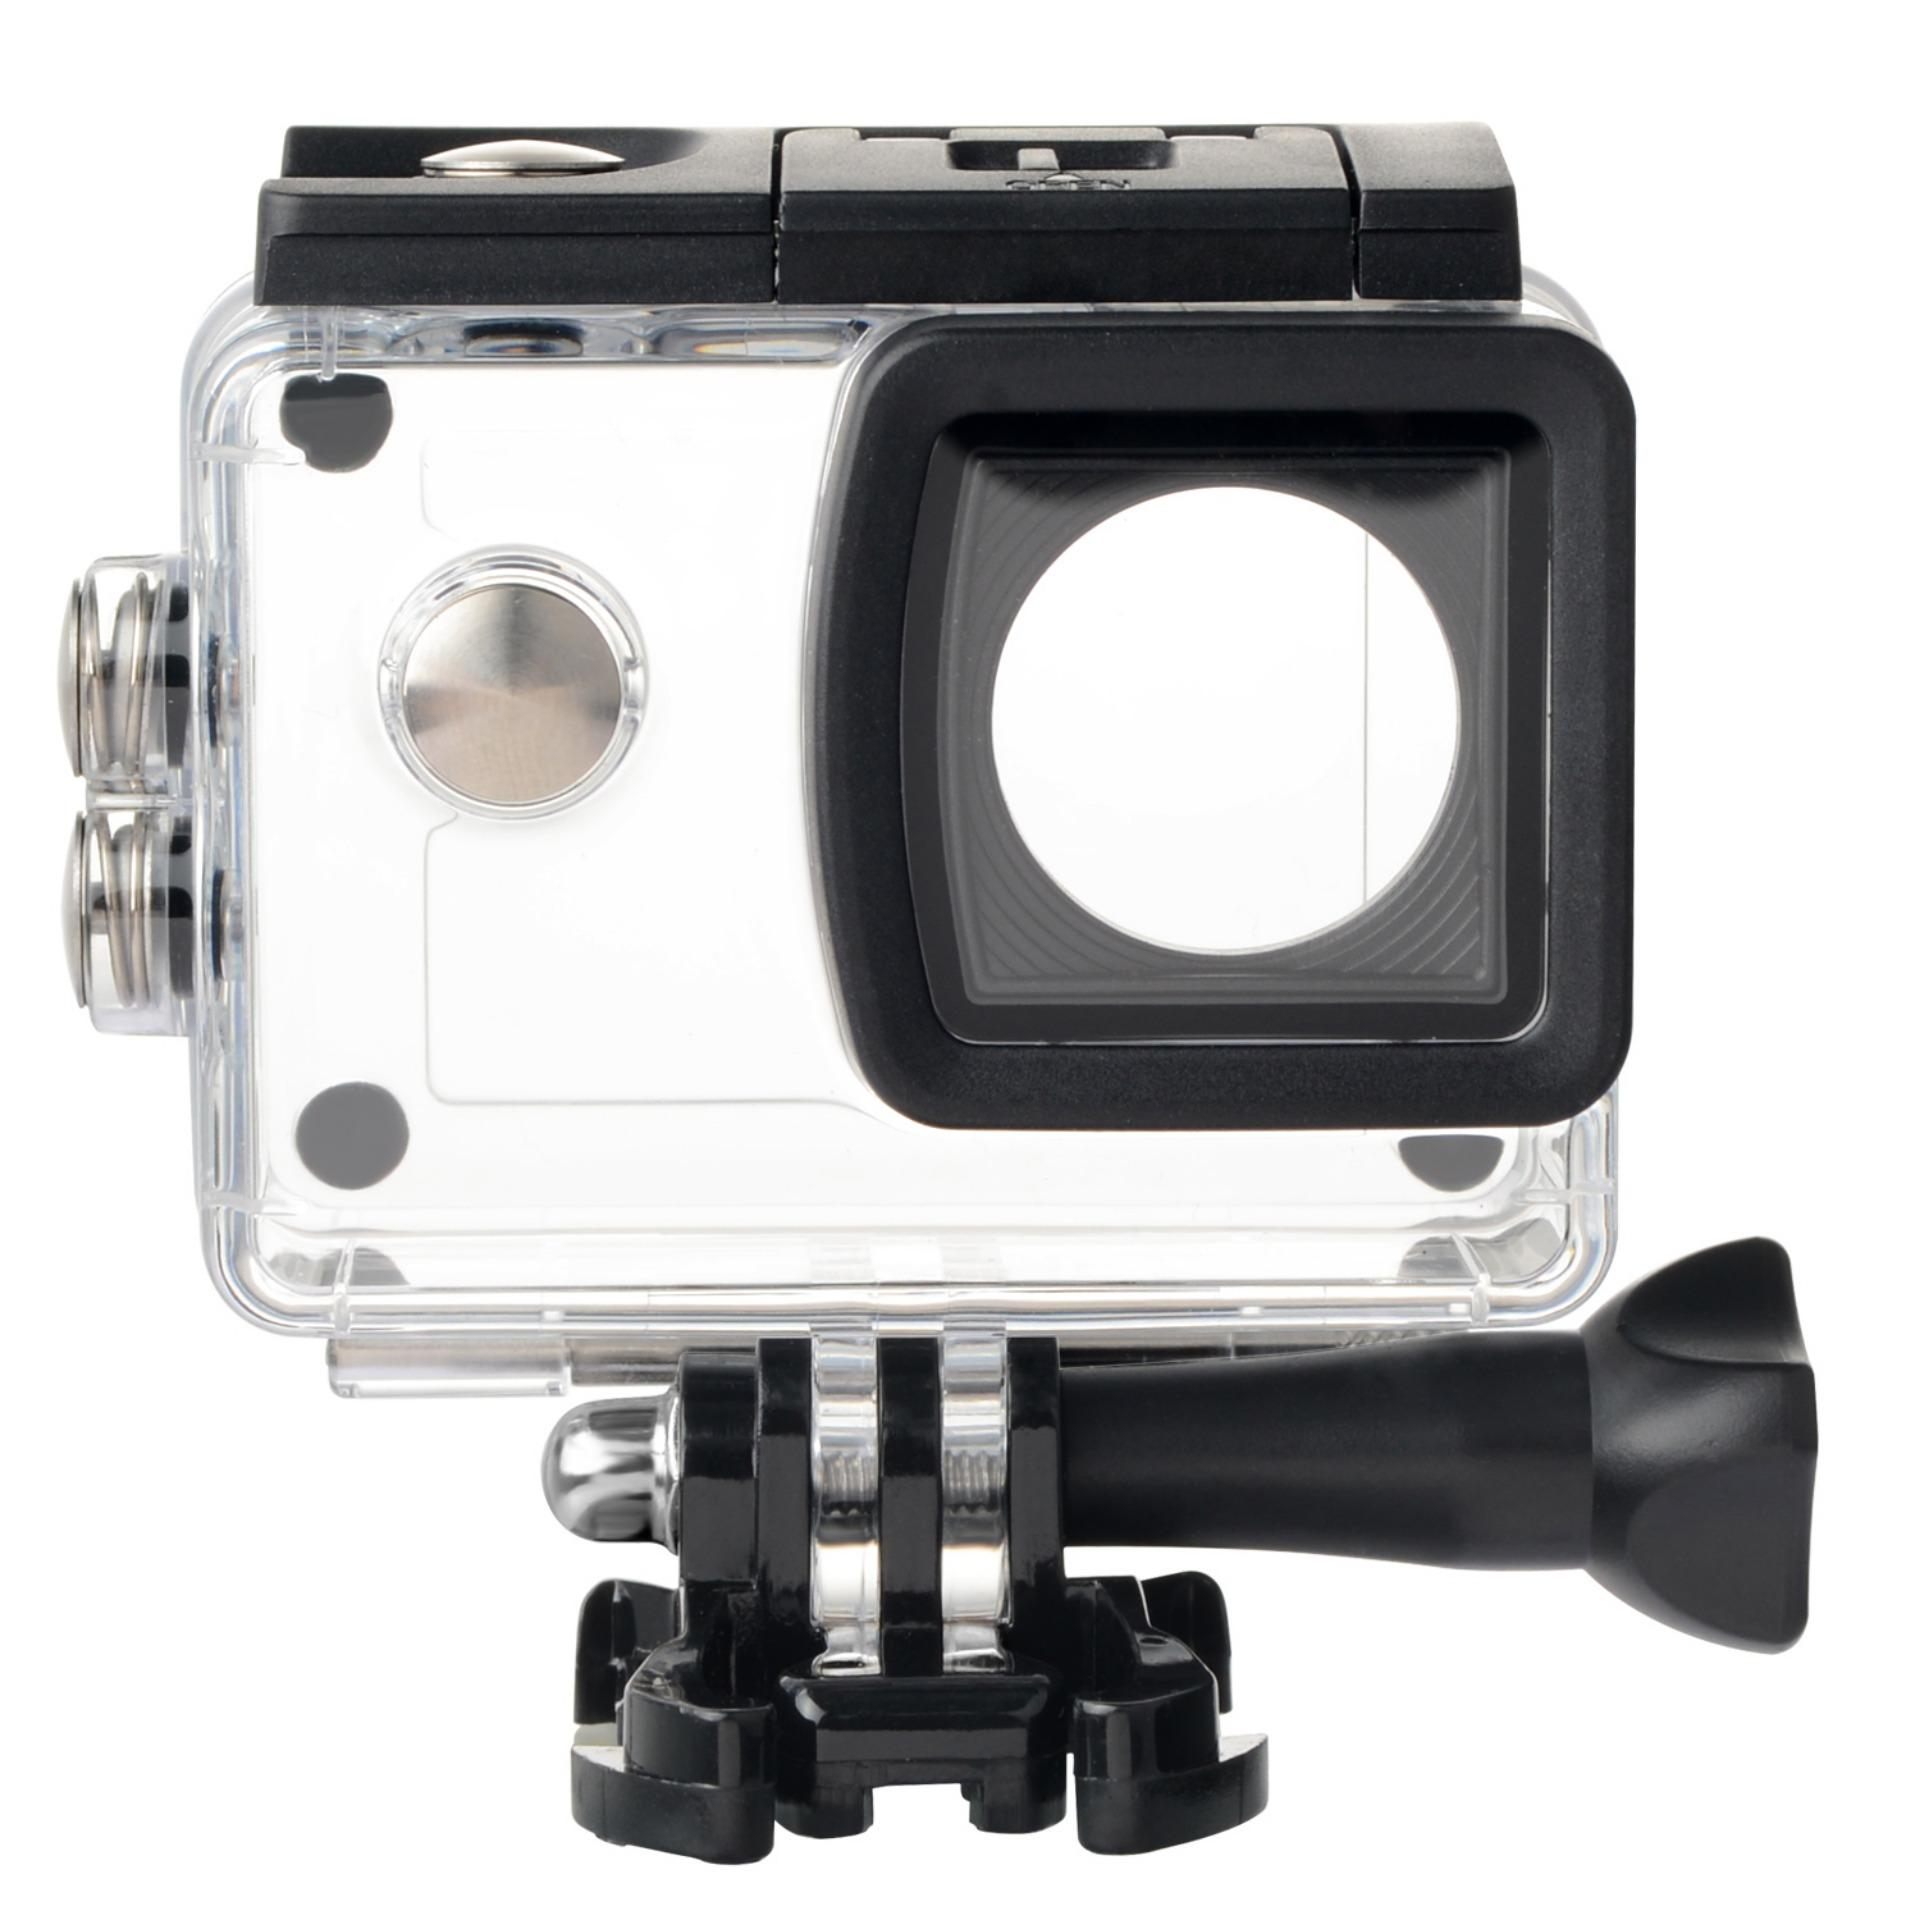 Action Camera Cases For Sale Waterproof Cameras Prices Xiaomi Yi 2 4k Ver International Black Sjcam Case V2 Sj4000 Series Clear